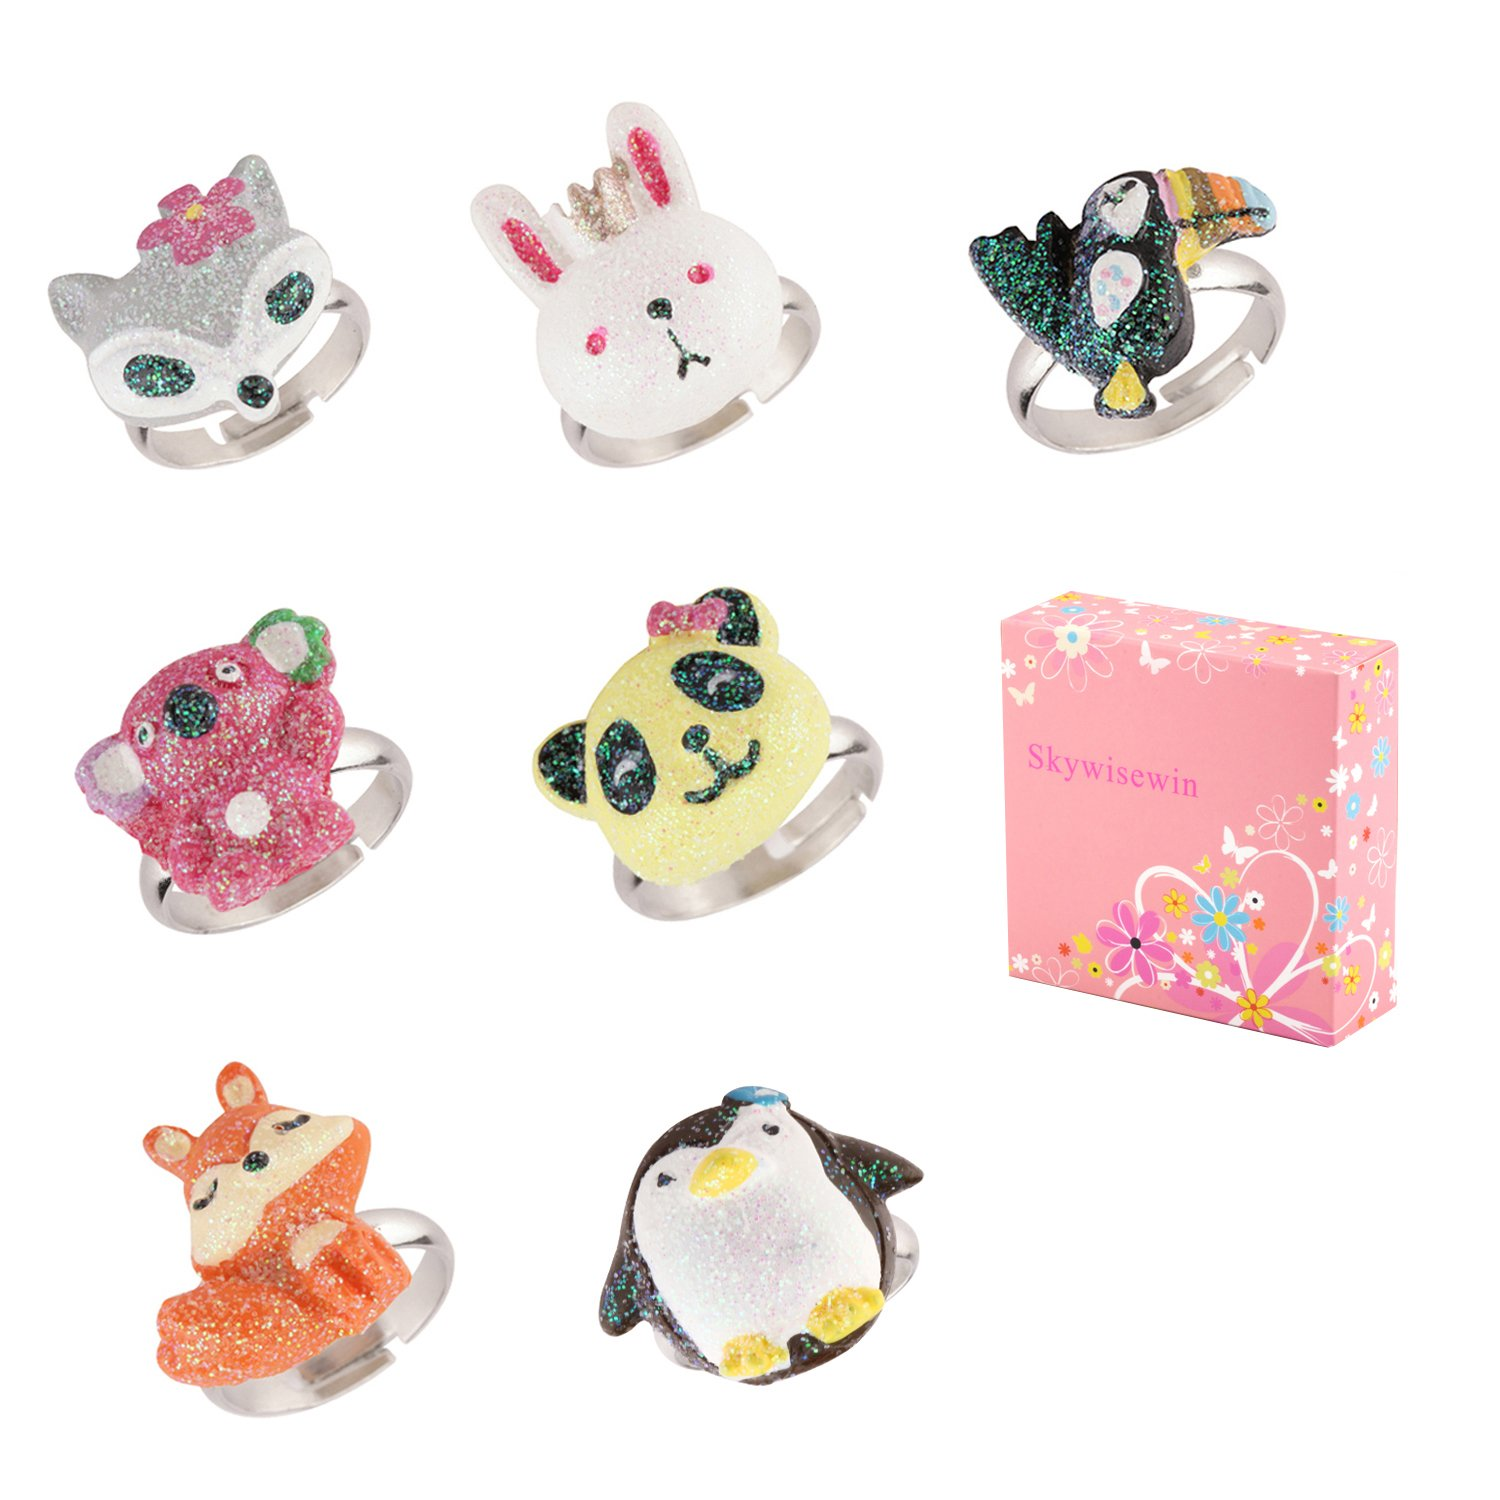 Skywisewin Rings for Little Girls - Multi Pairs Adjustable Cute Animals Rings for Children Made of Polymer Clay - Kid's Jewelry Set of 7 B07DCJ14CN_US